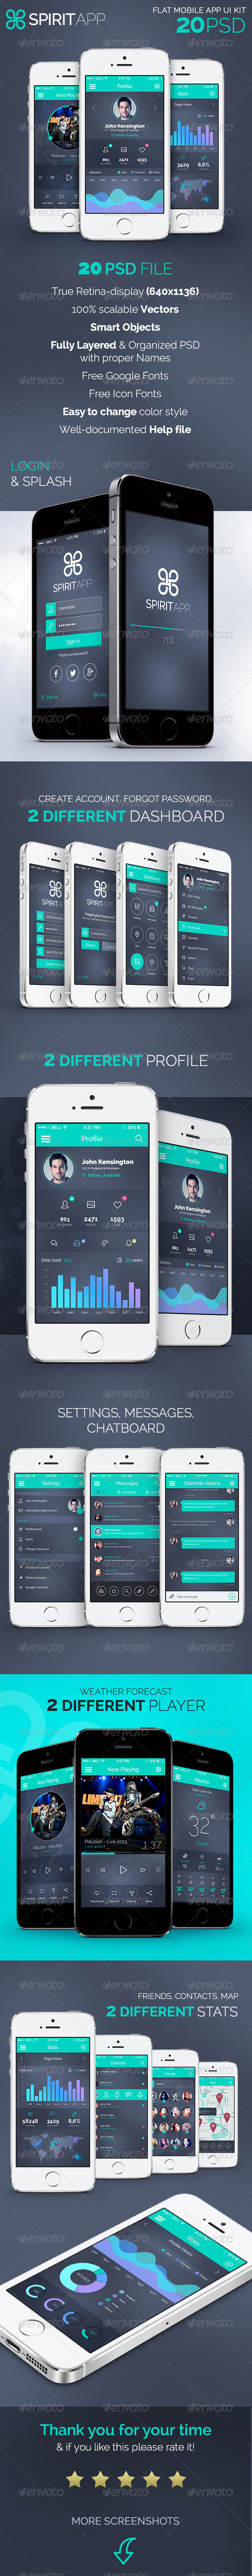 GraphicRiver SpiritApp Flat Mobile Design UI Kit 7791955